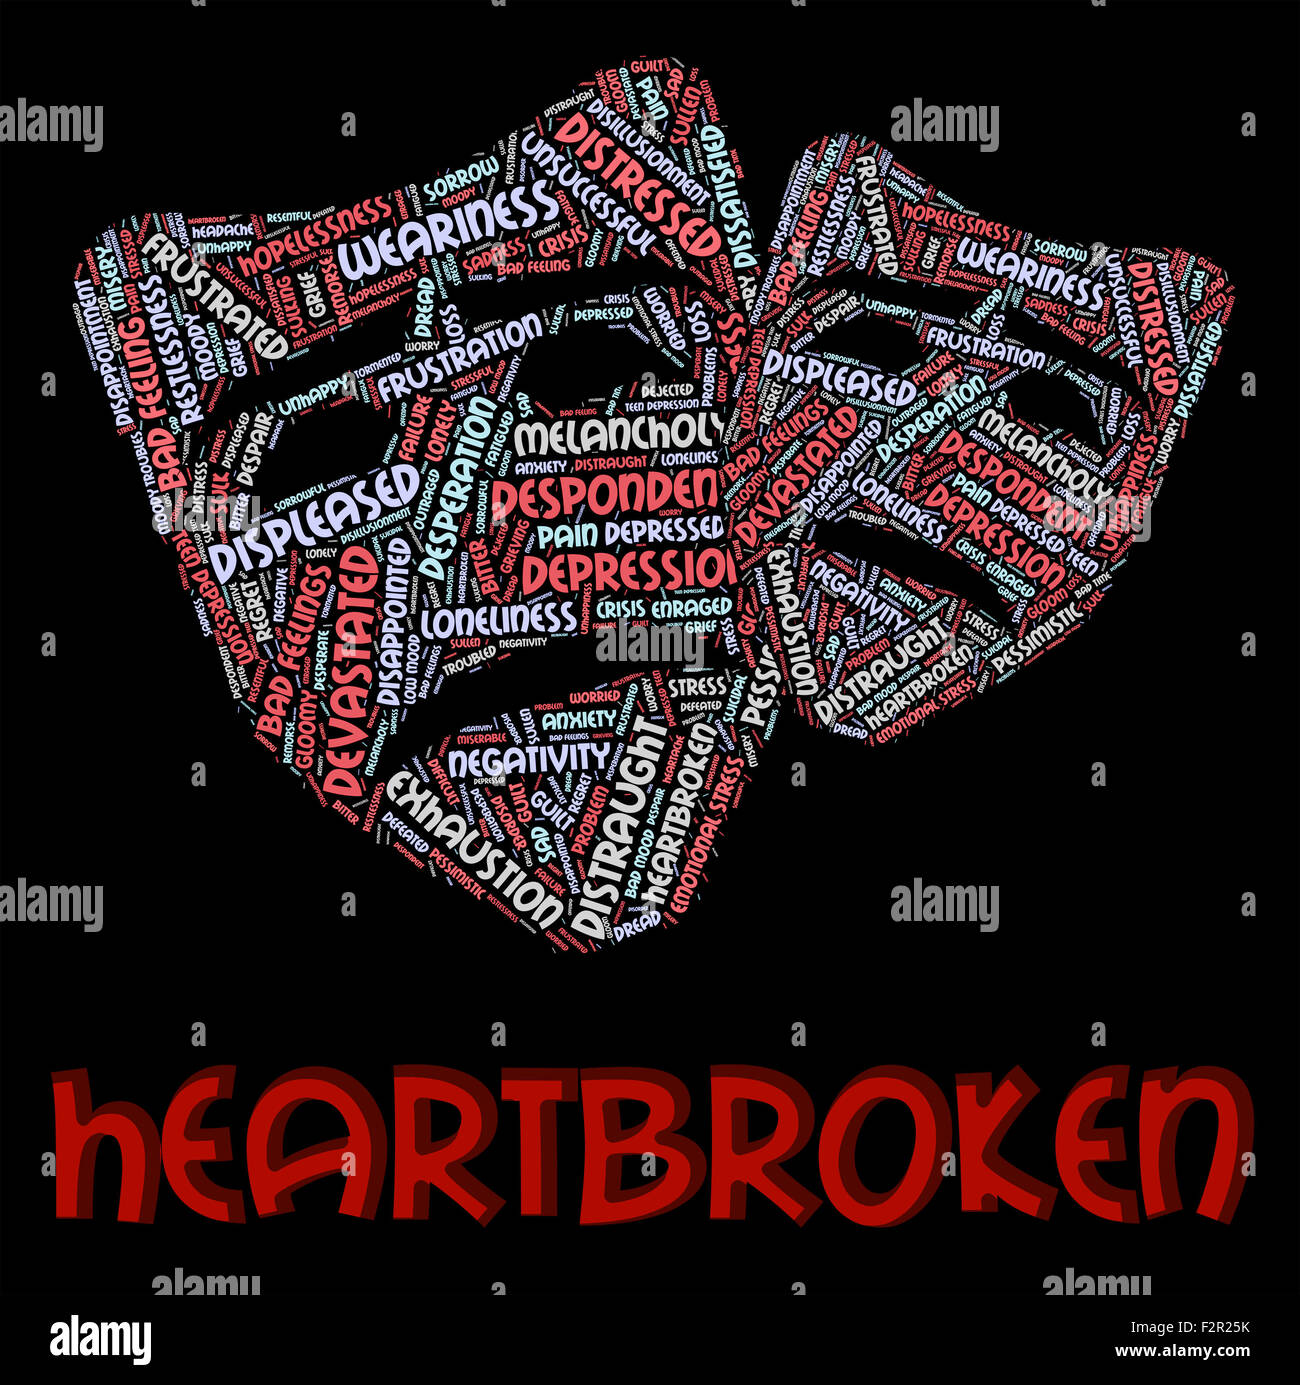 Heartbroken Word Representing Heavy Hearted And Grieving - Stock Image